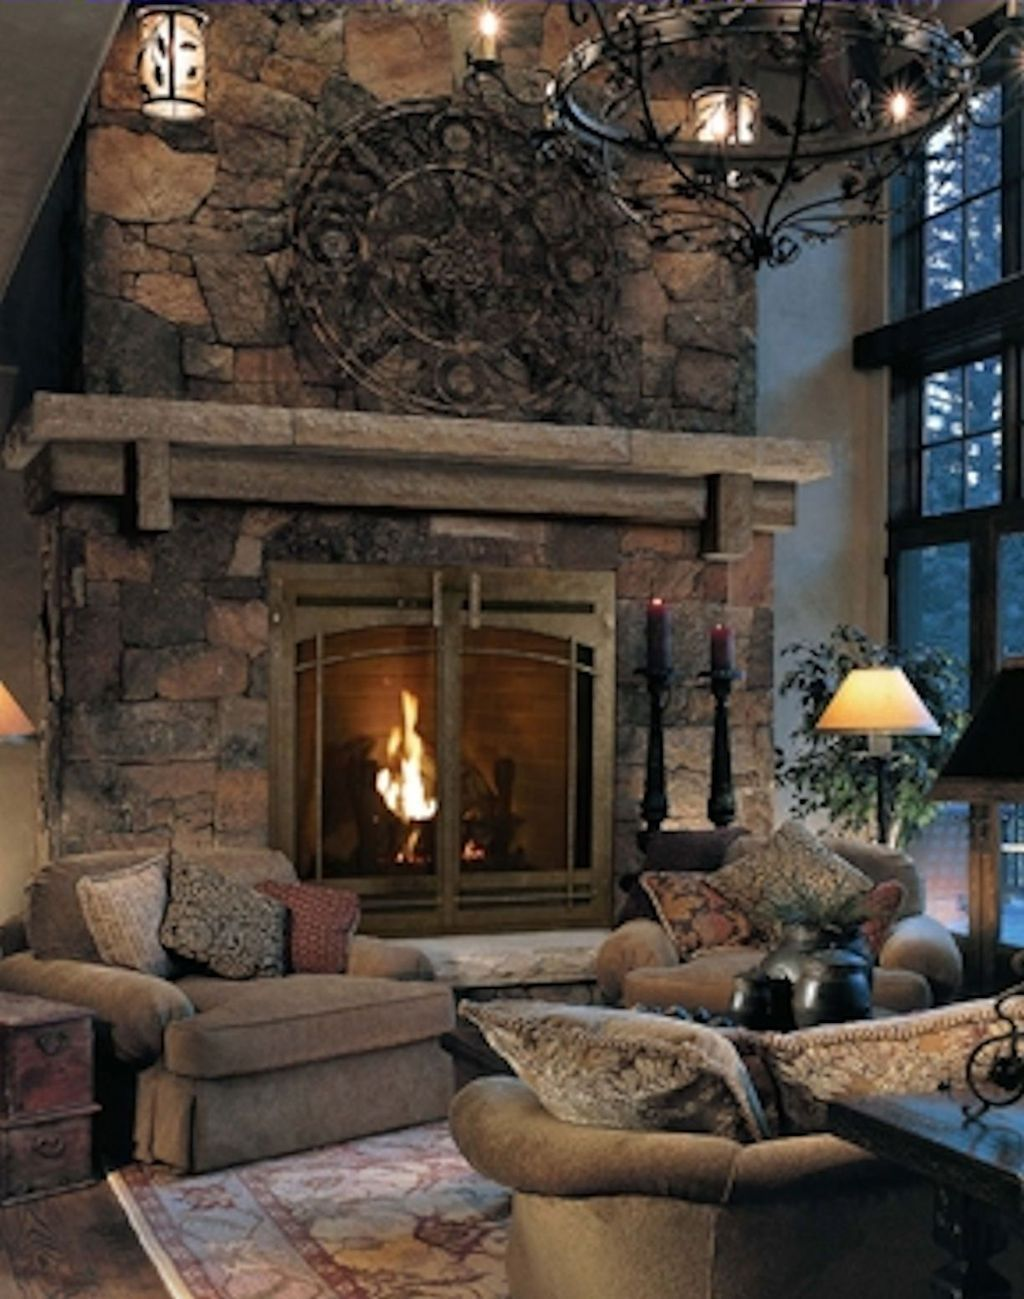 47 Rustic Farmhouse Fire Place Idea for Your House images